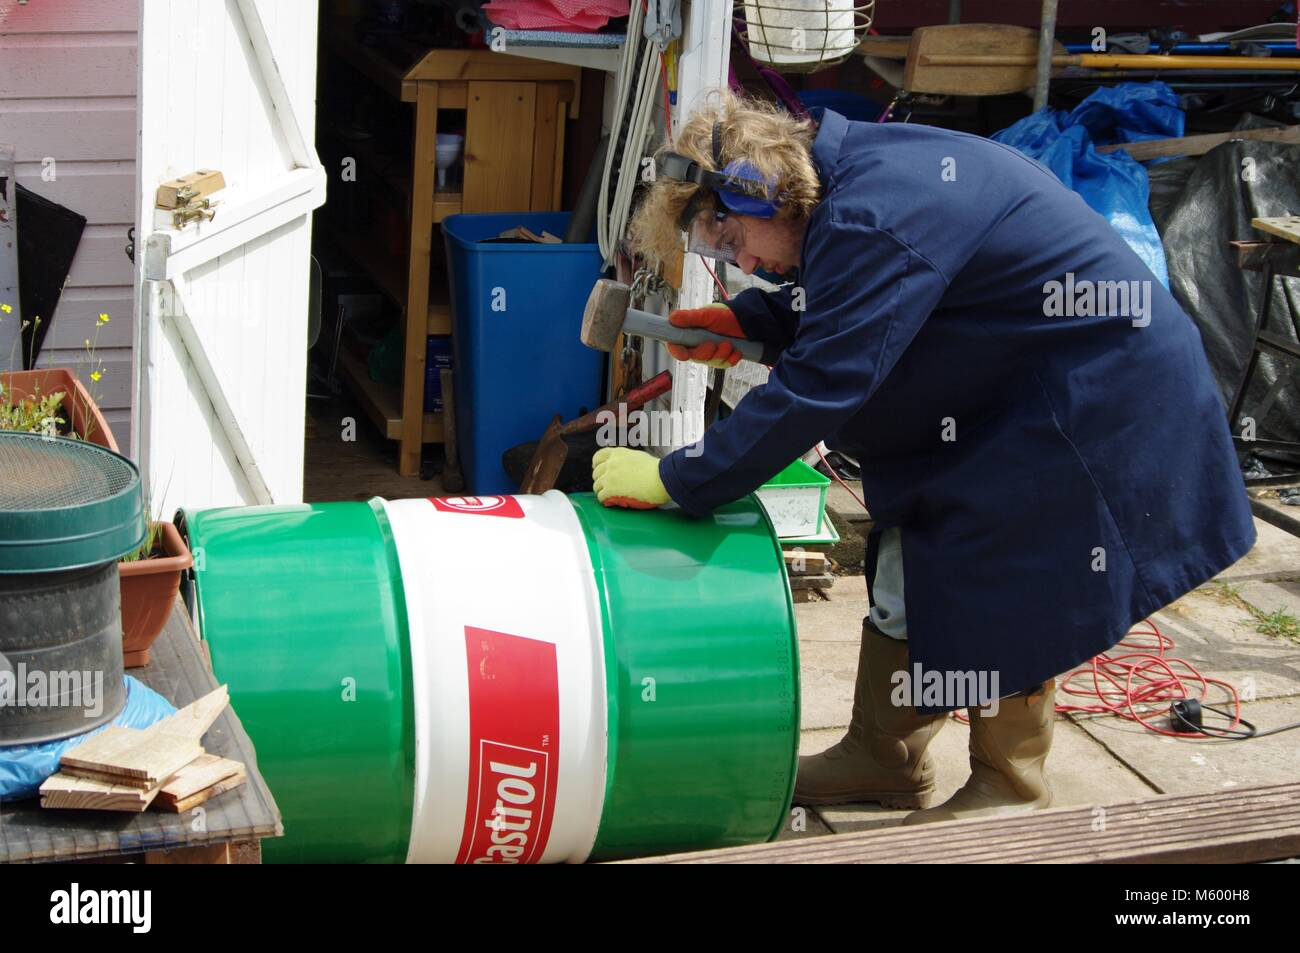 Teenager with long Blonde Hair, a Lab Coat and Safety Equipment Hammering Holes into a Used Oil Drum. DIY Project, - Stock Image